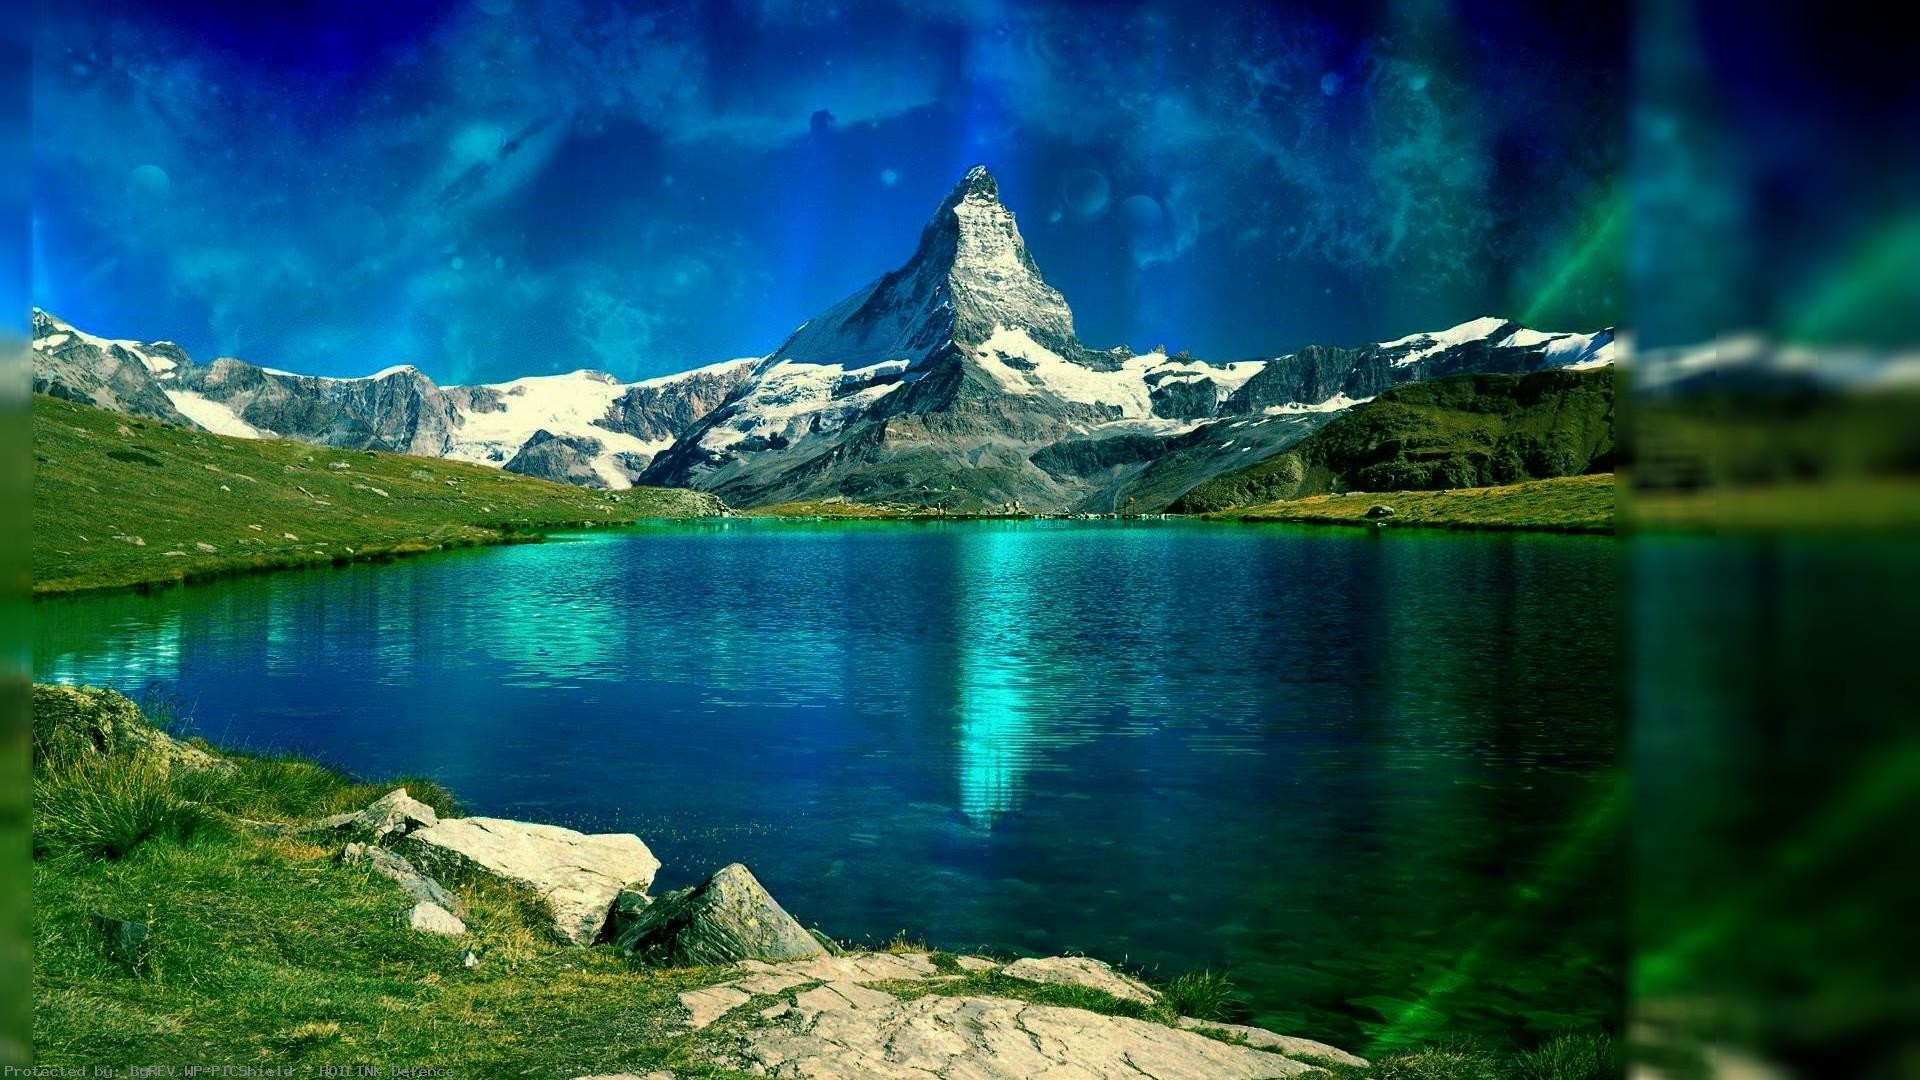 free-background-WOW-com-Image-Results-wallpaper-wp6006875